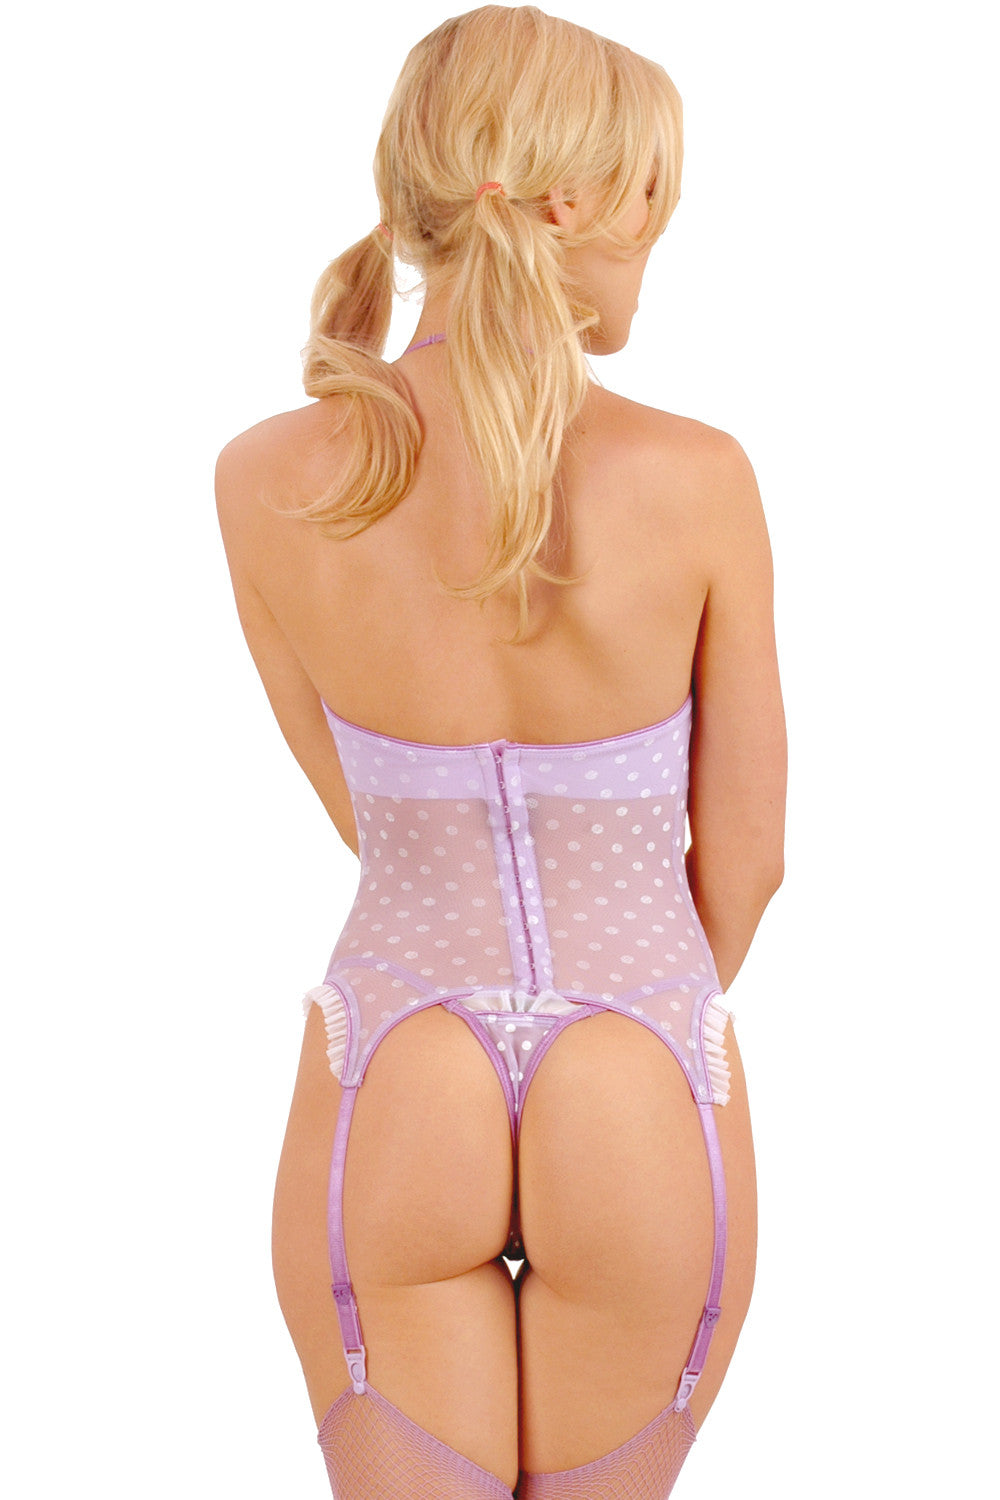 Créme Chantilly Thong with Ruffle